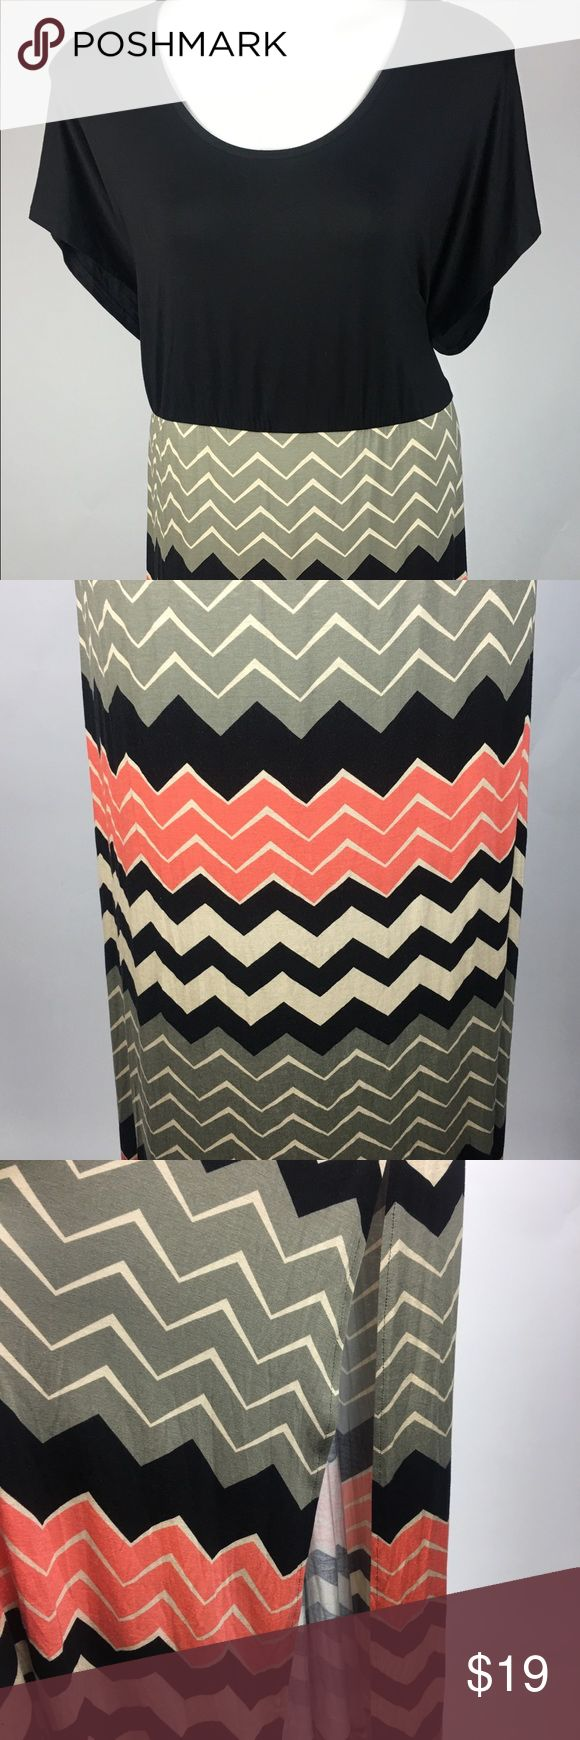 """Chevron Maxi Dress drop waist plus size 3X a.n.a Chevron Maxi Dress - size 3x - short sleeve - full length with slit in skirt - chest 52"""" unstretched- length 57.5"""" hip 58"""" - pre owned and gently worn a.n.a Dresses Maxi"""